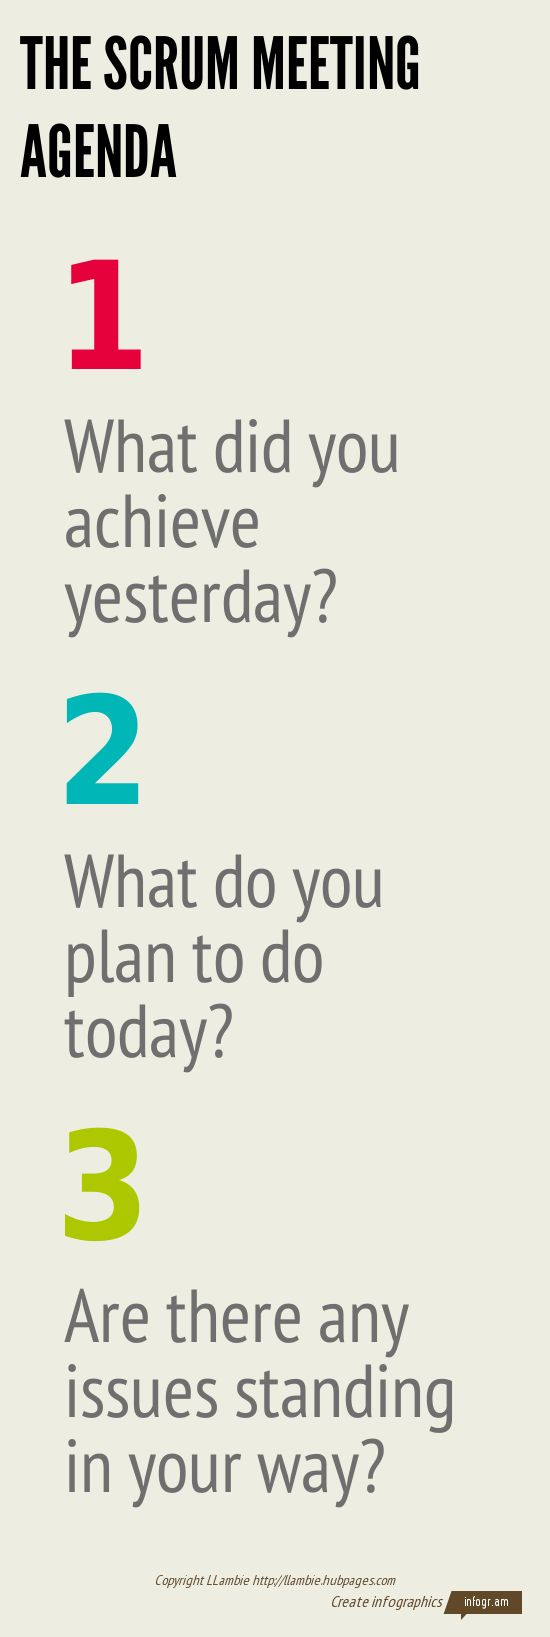 How To Make An Agenda For A Meeting Template 504 Best Work Images On Pinterest  Learning Communication And .